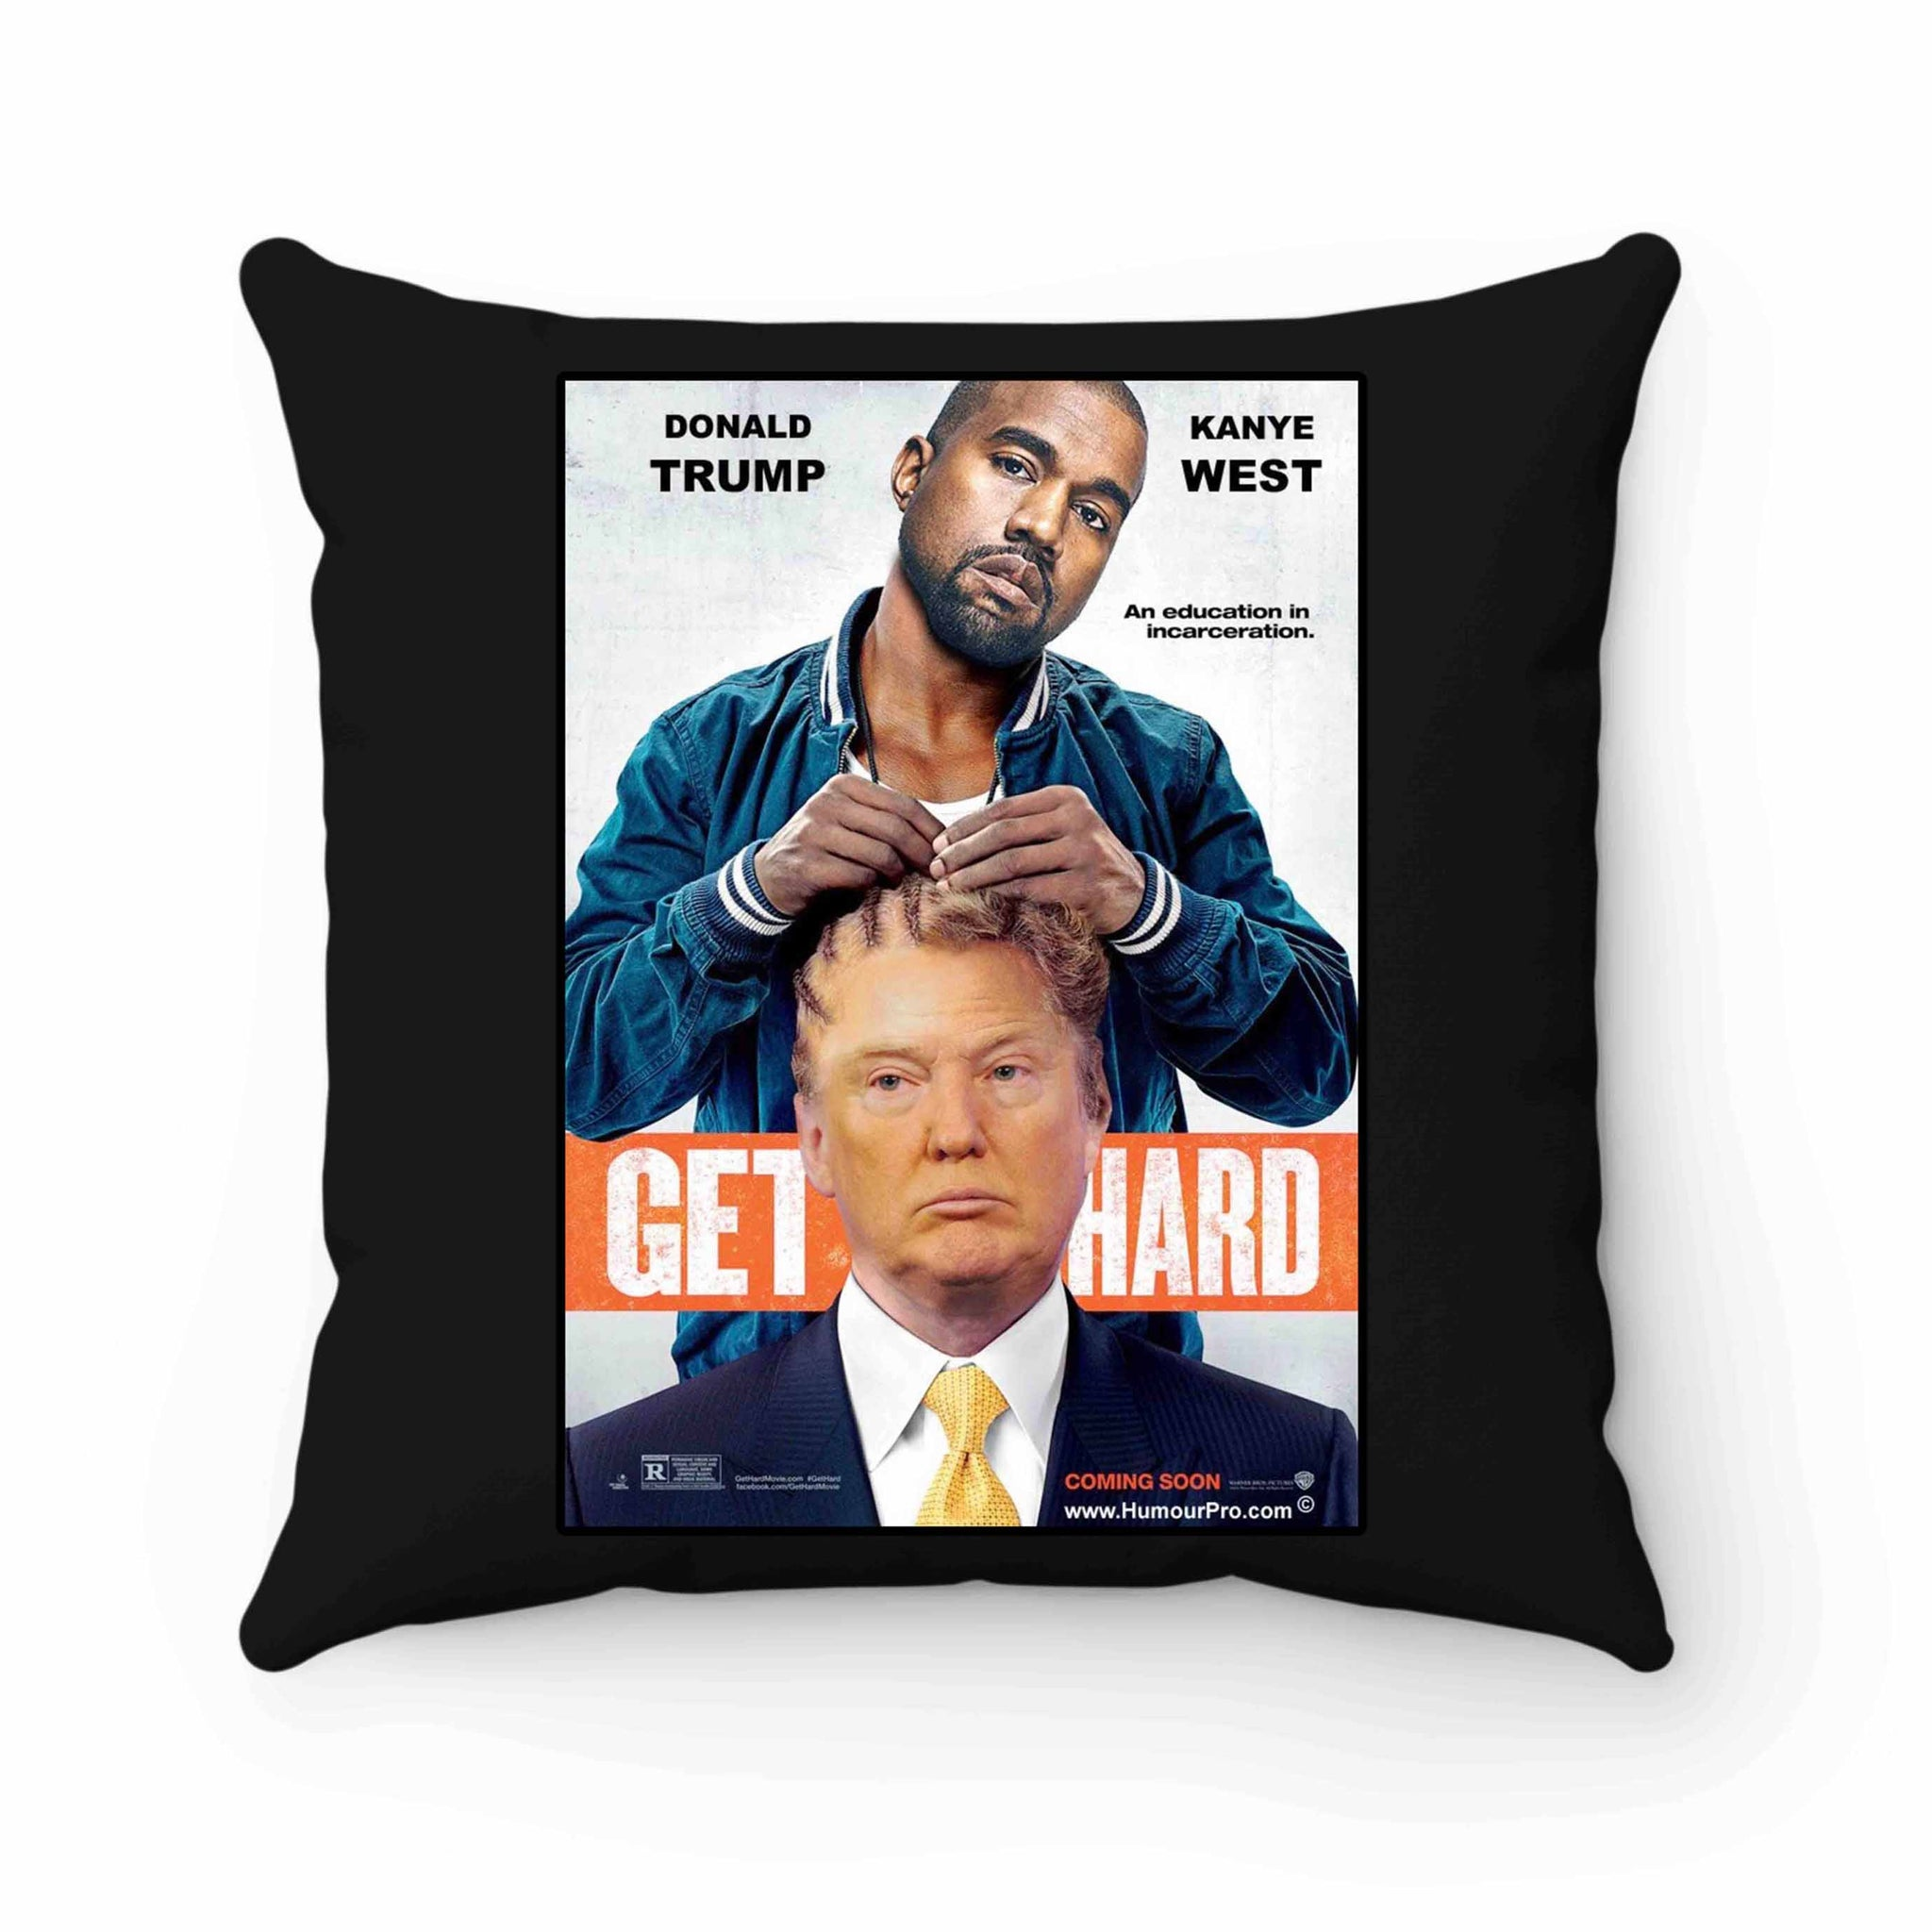 Get Hard Kanye West Donald Trump Pillow Case Cover